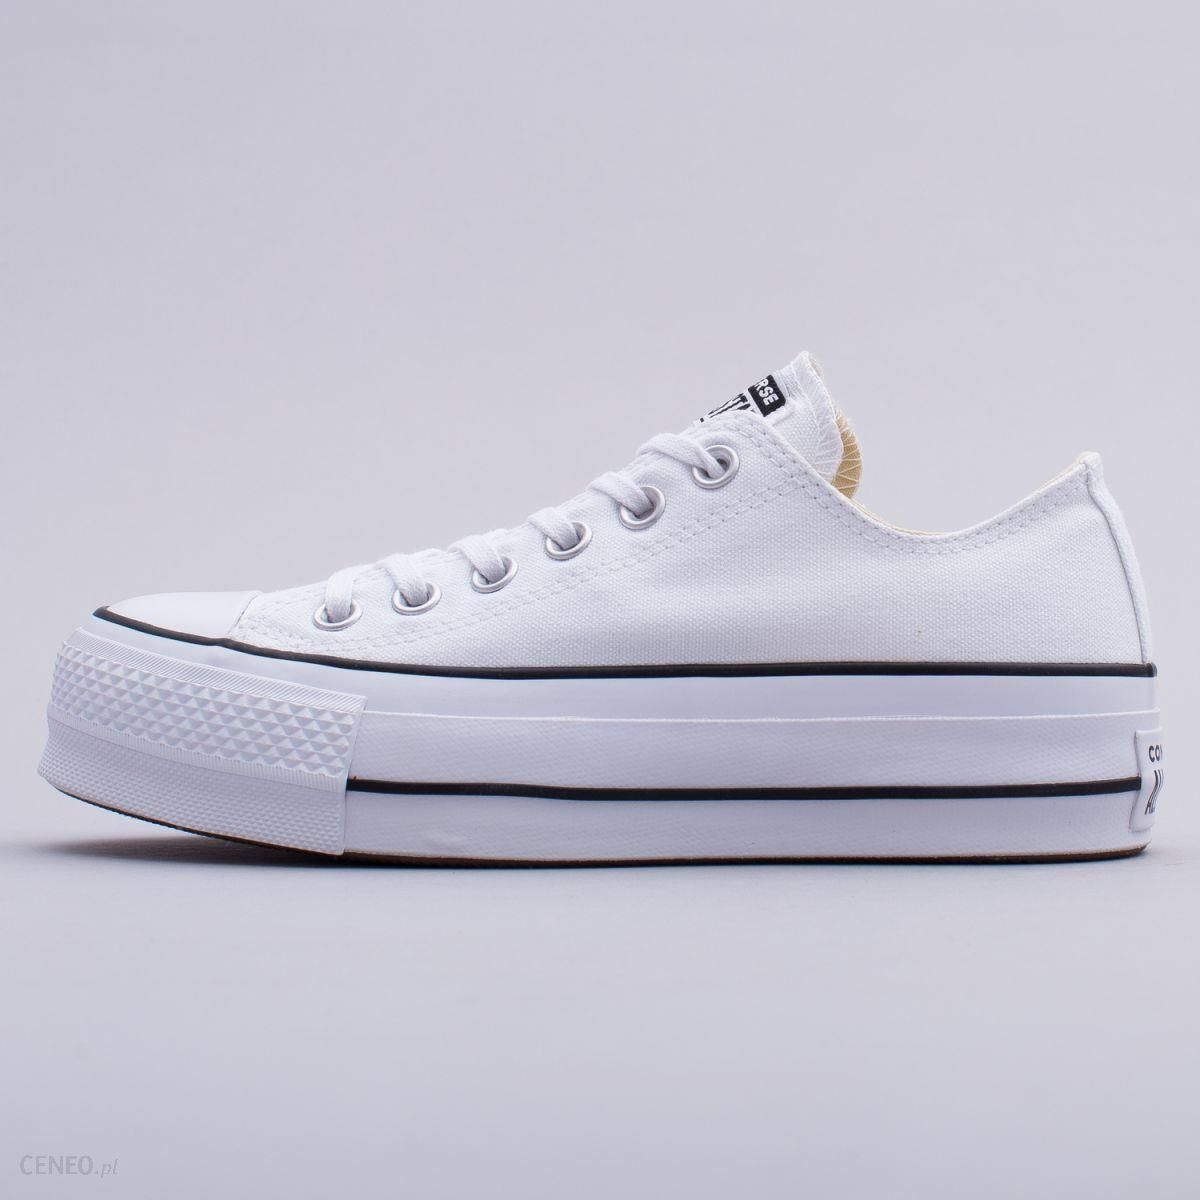 66bdede00034a Converse Chuck Taylor All Star Lift 560251C - Ceny i opinie - Ceneo.pl